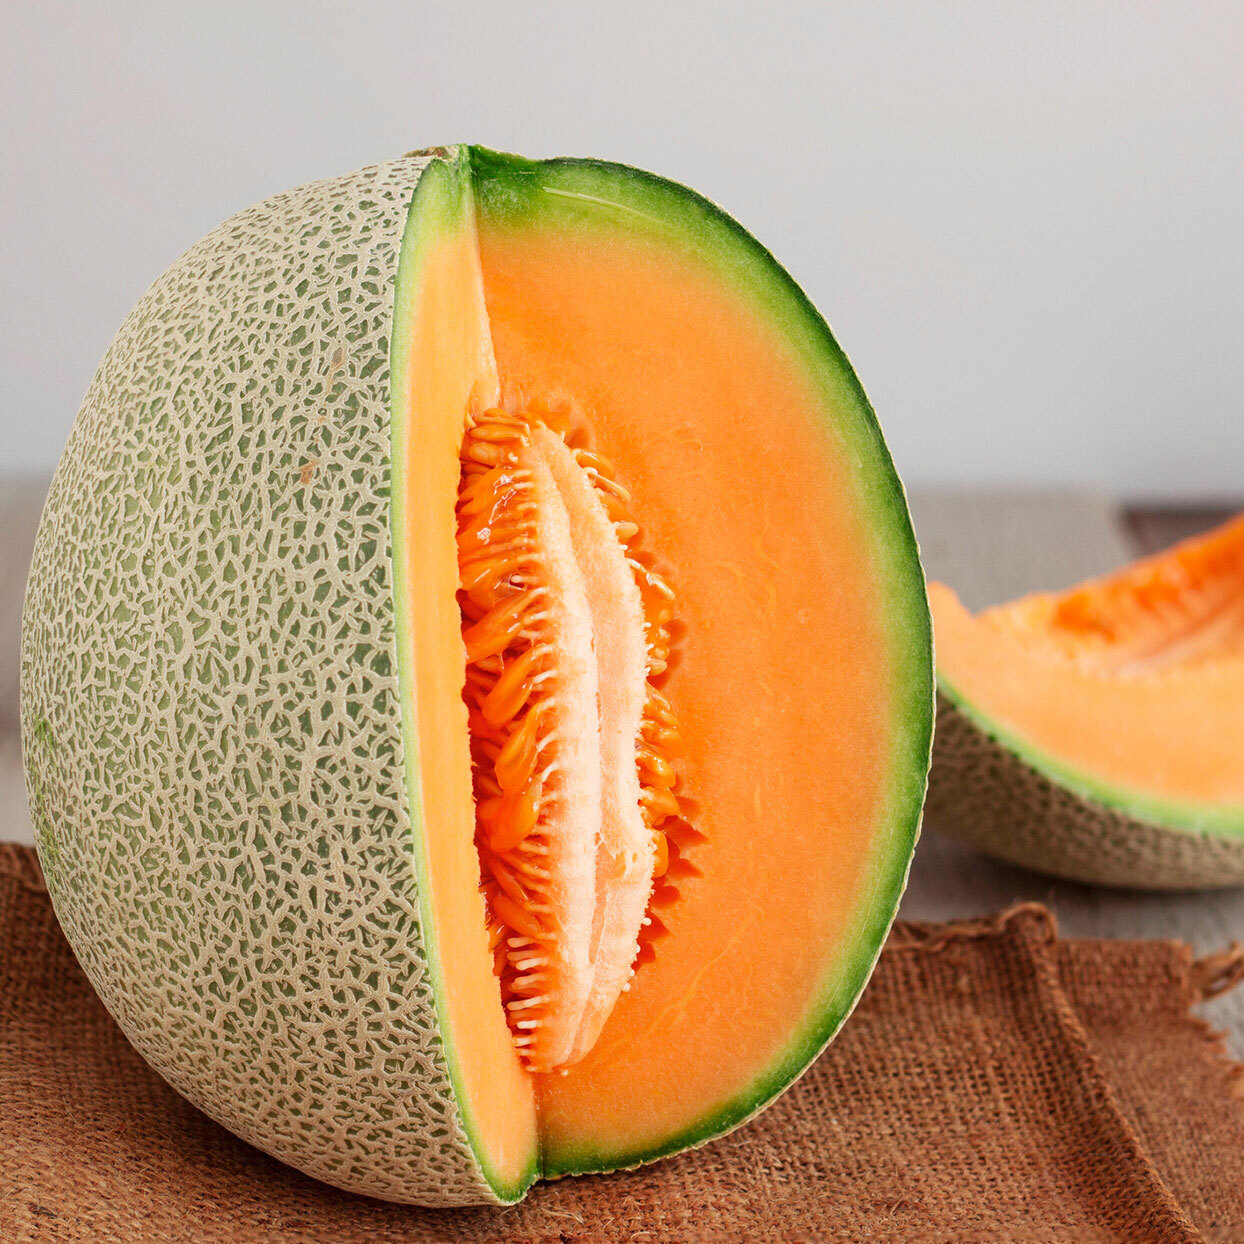 a cantaloupe with a slice taken out